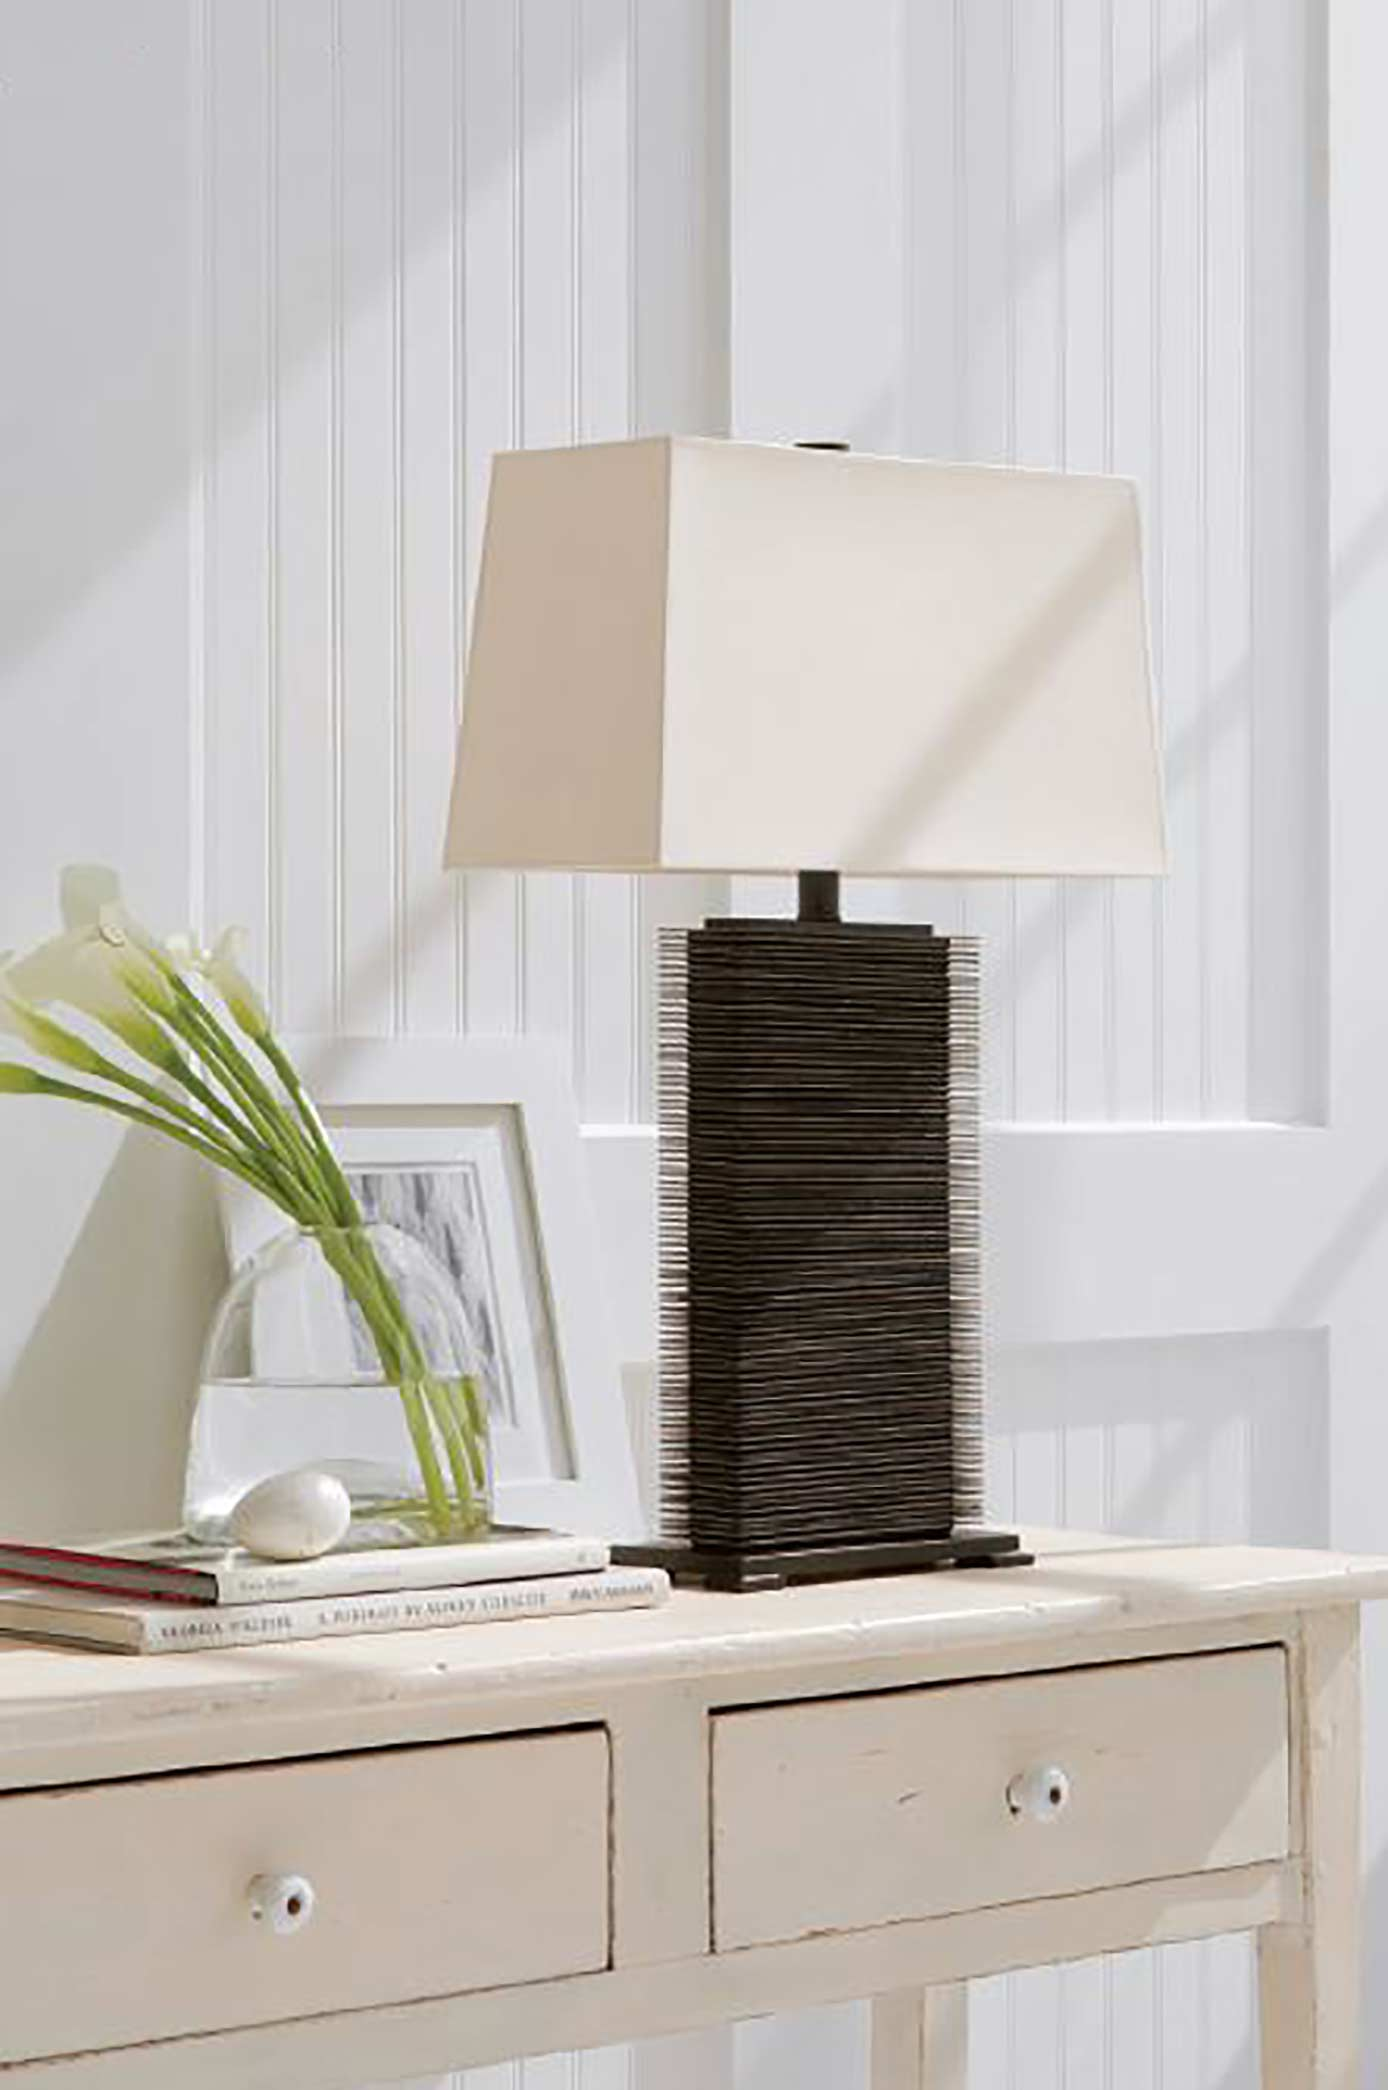 Visual Comfort Convector Table Lamp Fogg Lighting